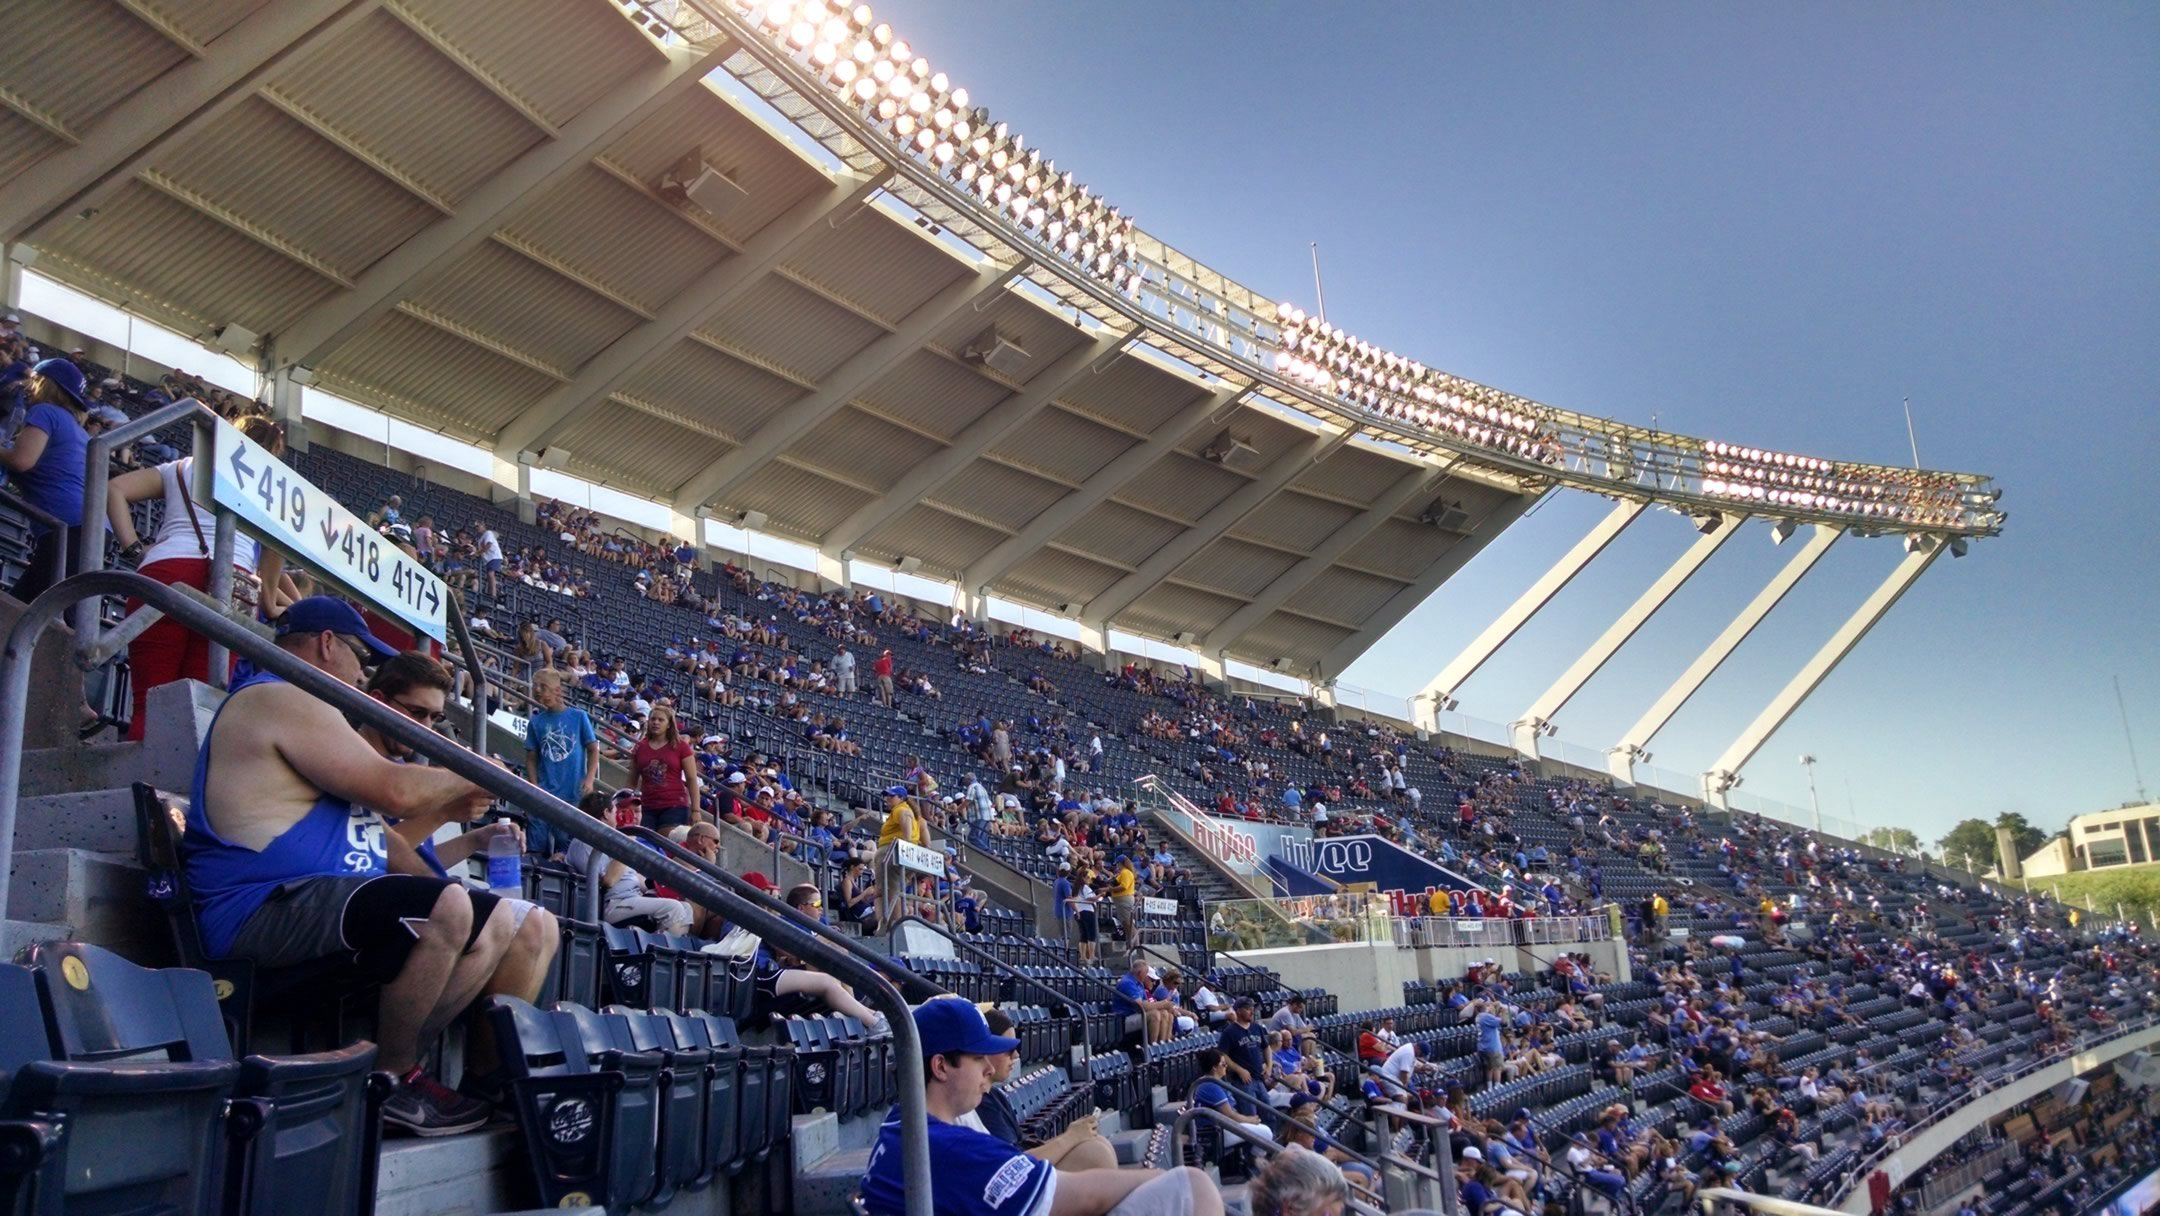 Kauffman Stadium Upper Level Down the Line